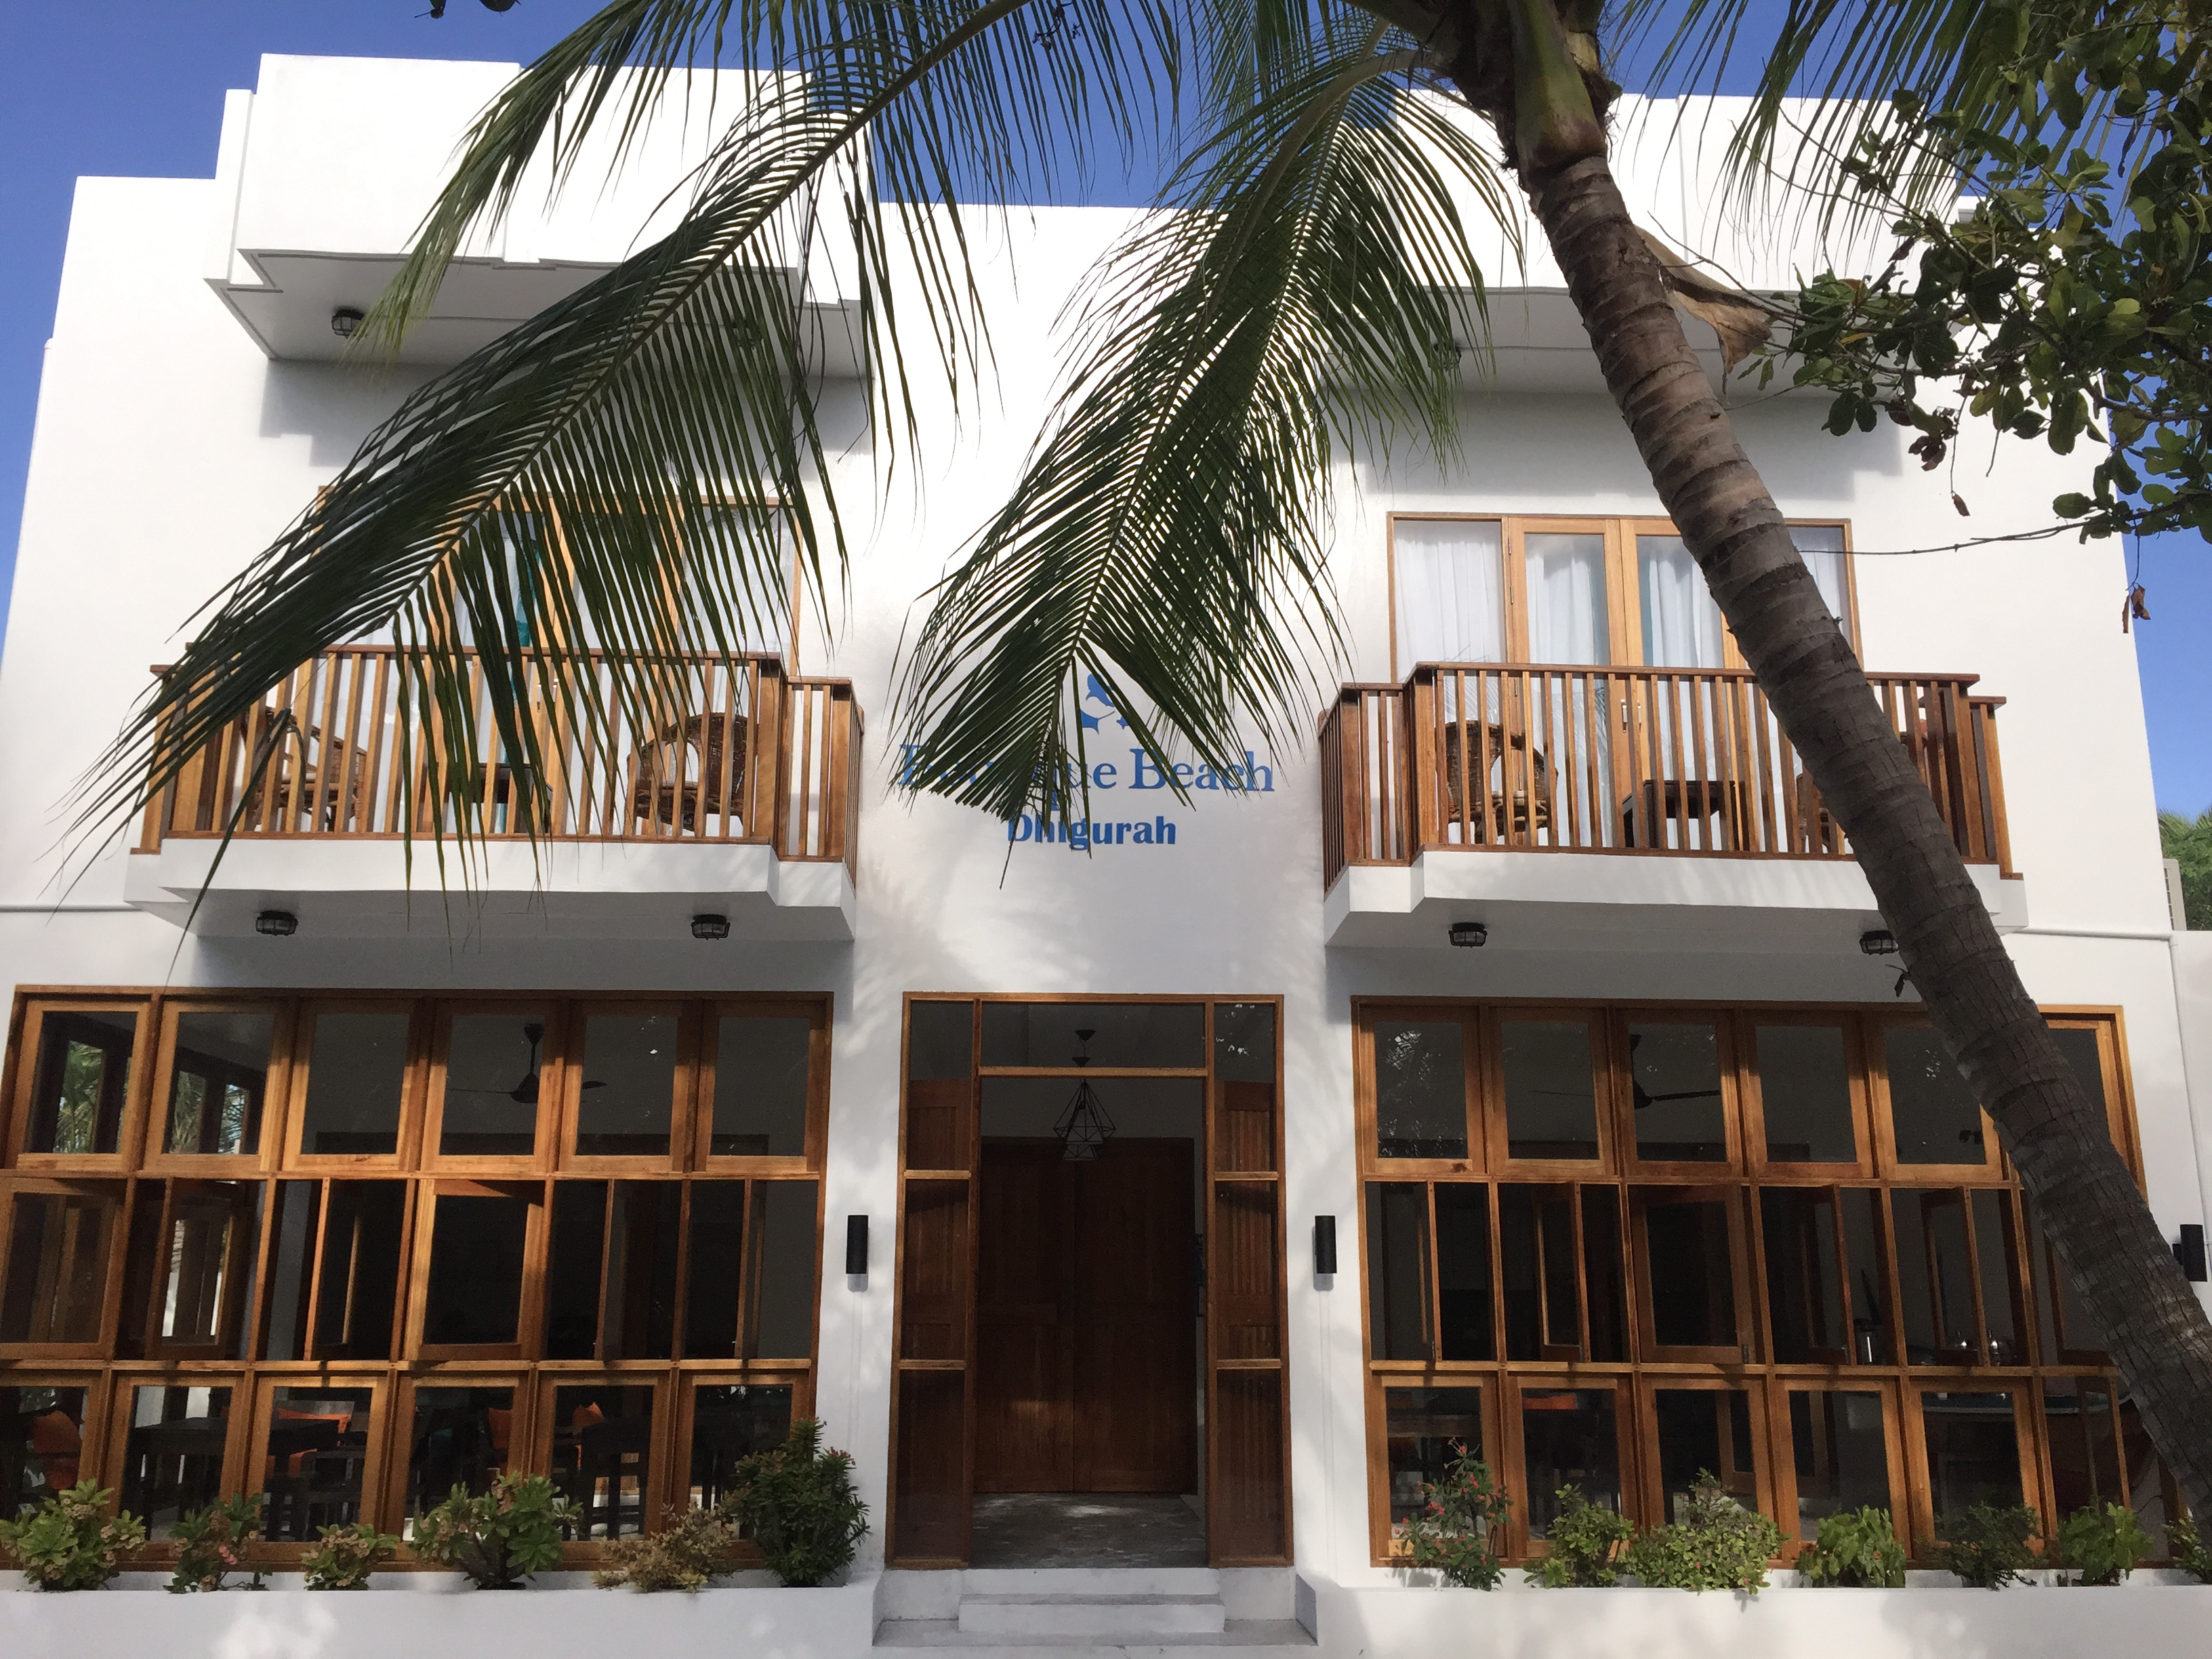 Boutique beach new maldives hotel in whale shark region for Beach boutique hotel